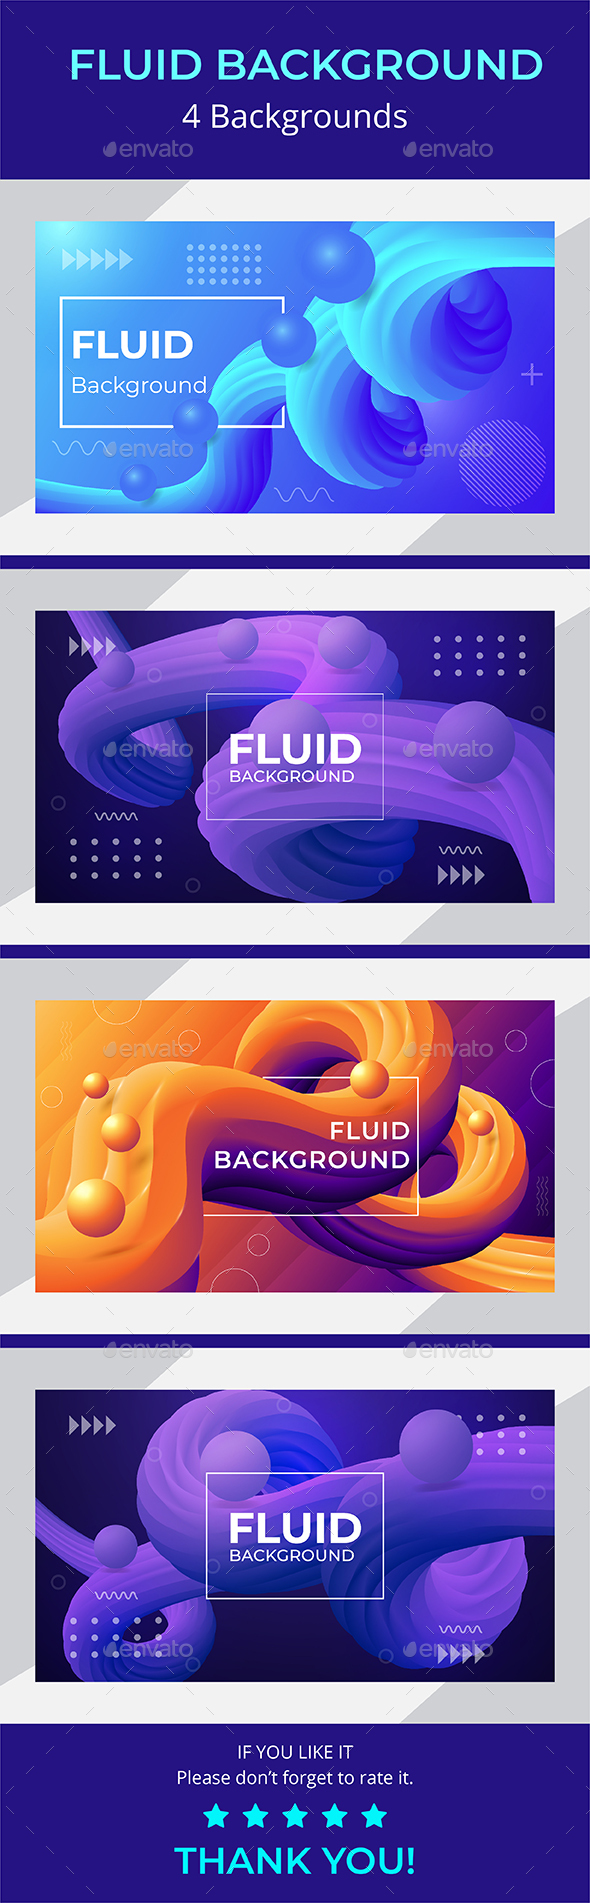 Fluid background with 3d fluid shape, ball, and shiny effect